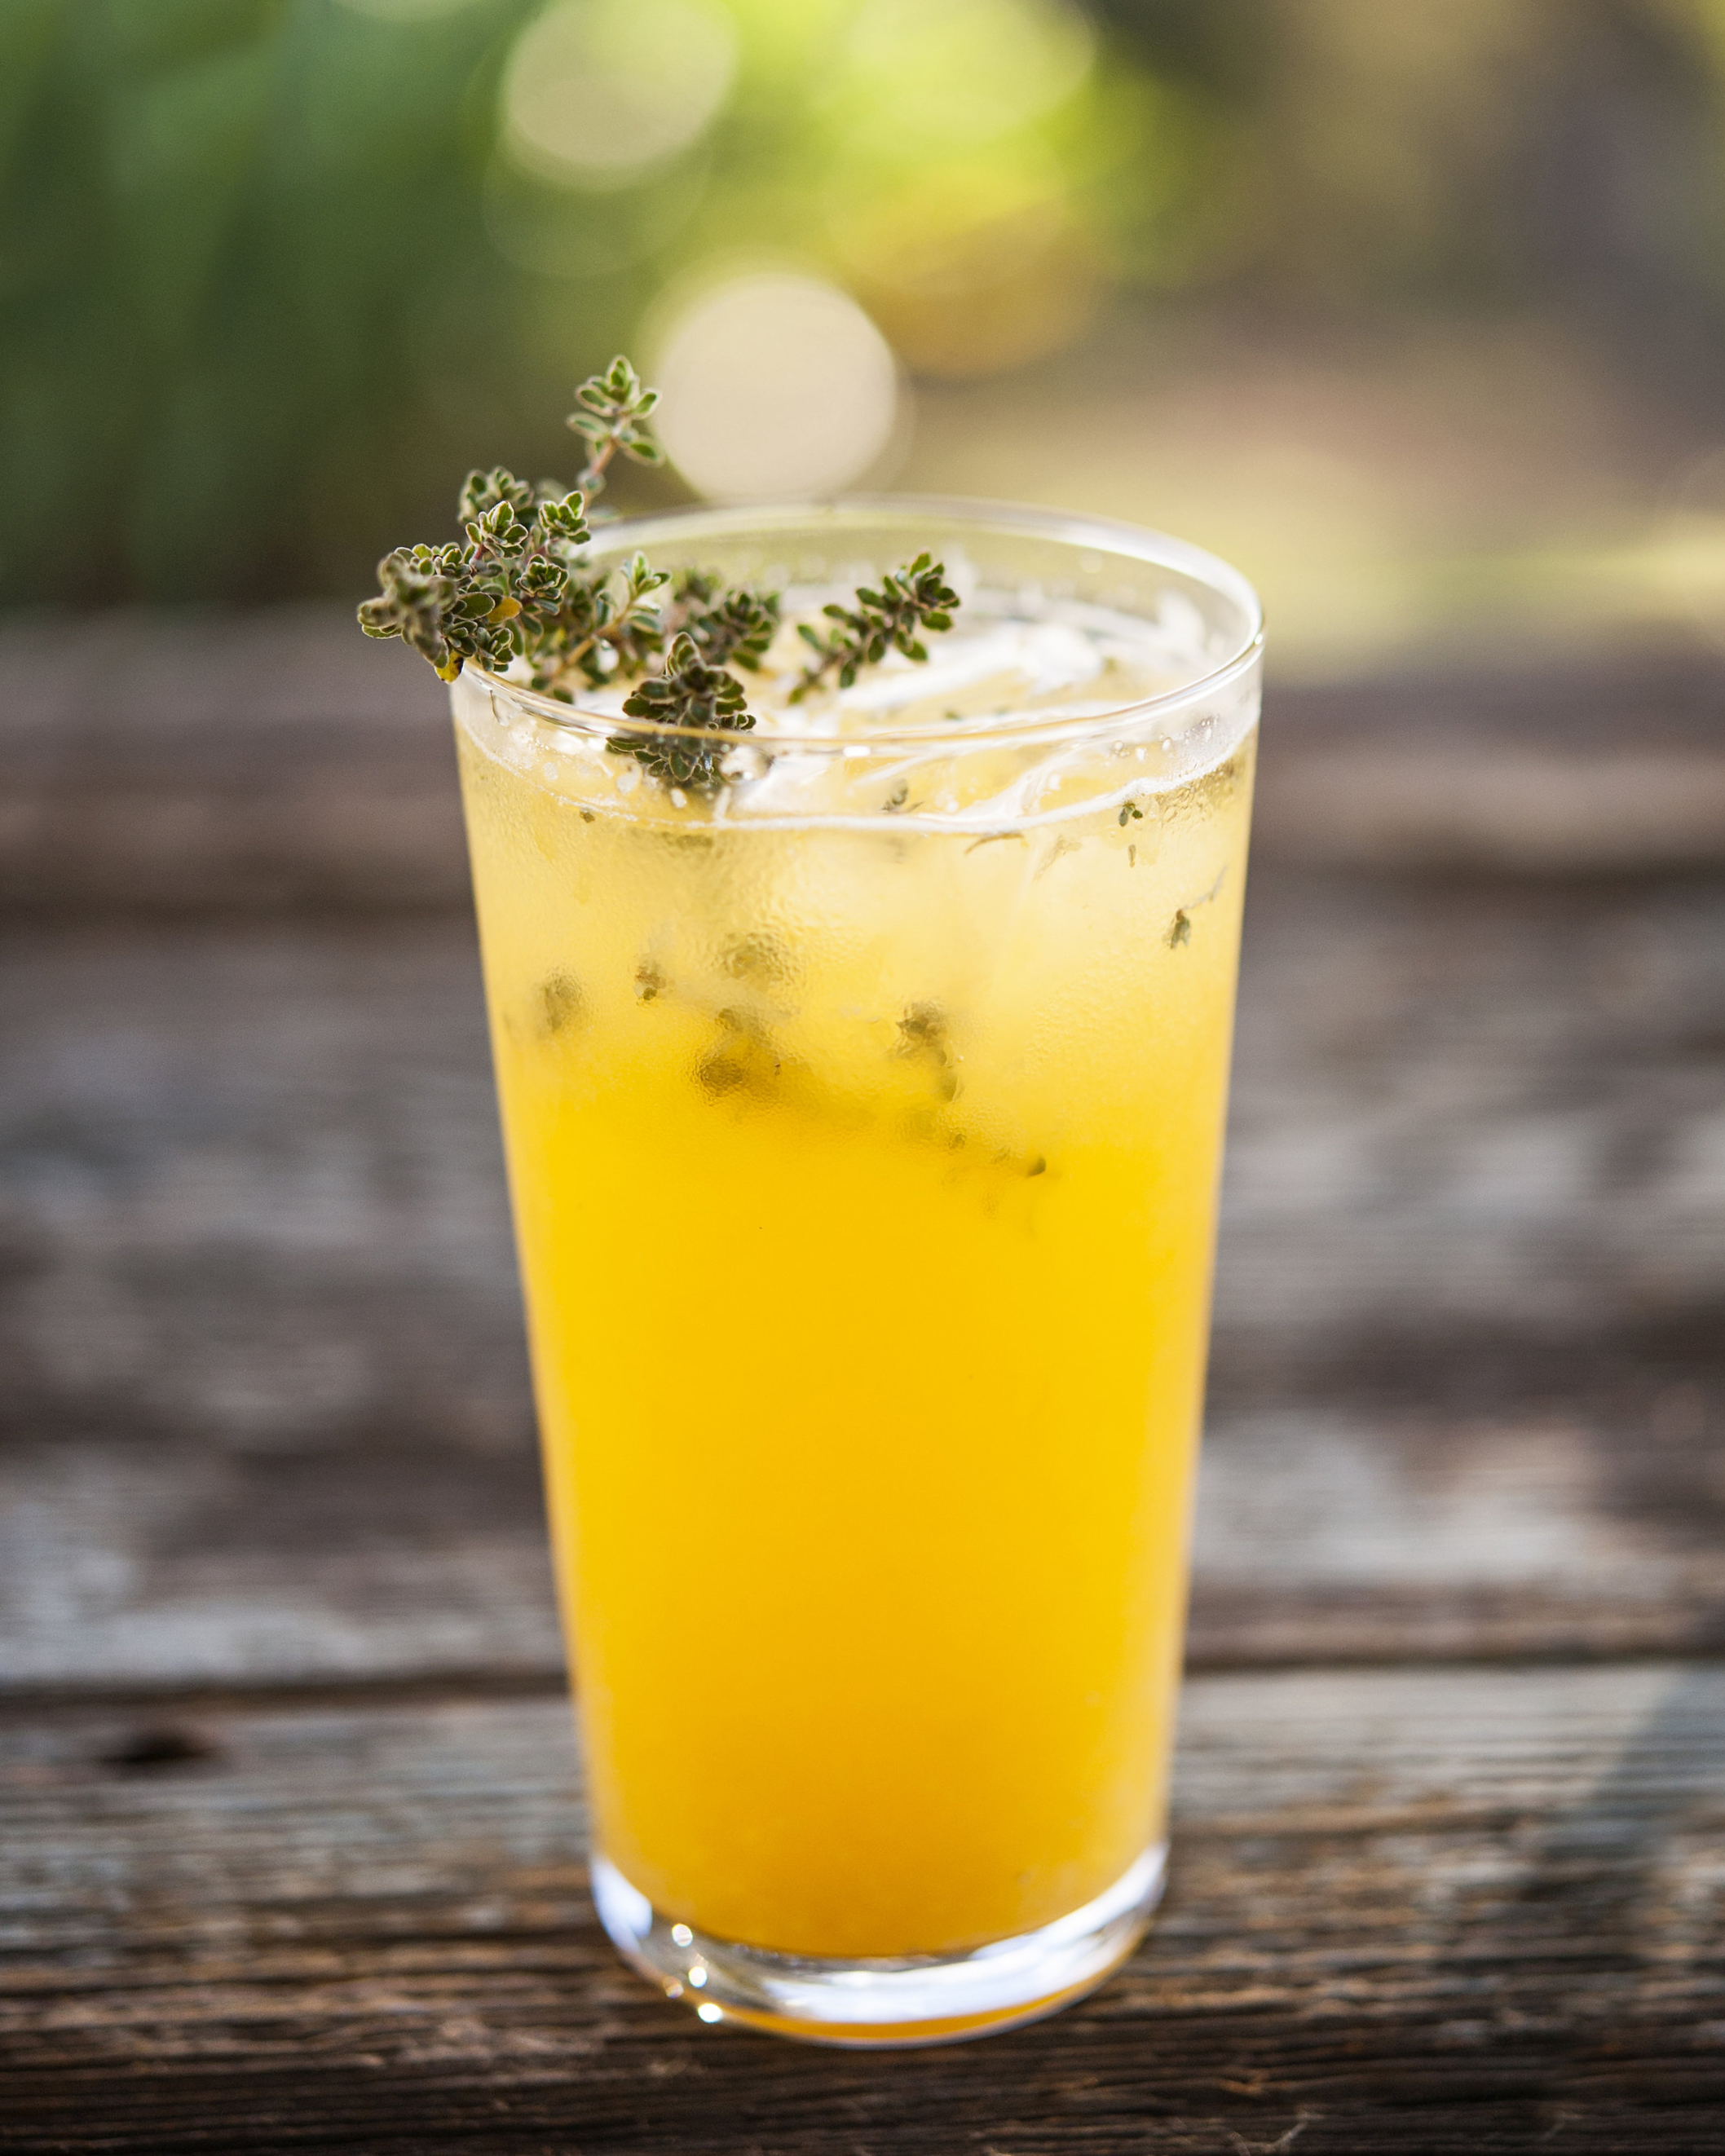 WINTER THYME   fresh pressed tangerine and lemon, house thyme syrup, lehua honey, gin